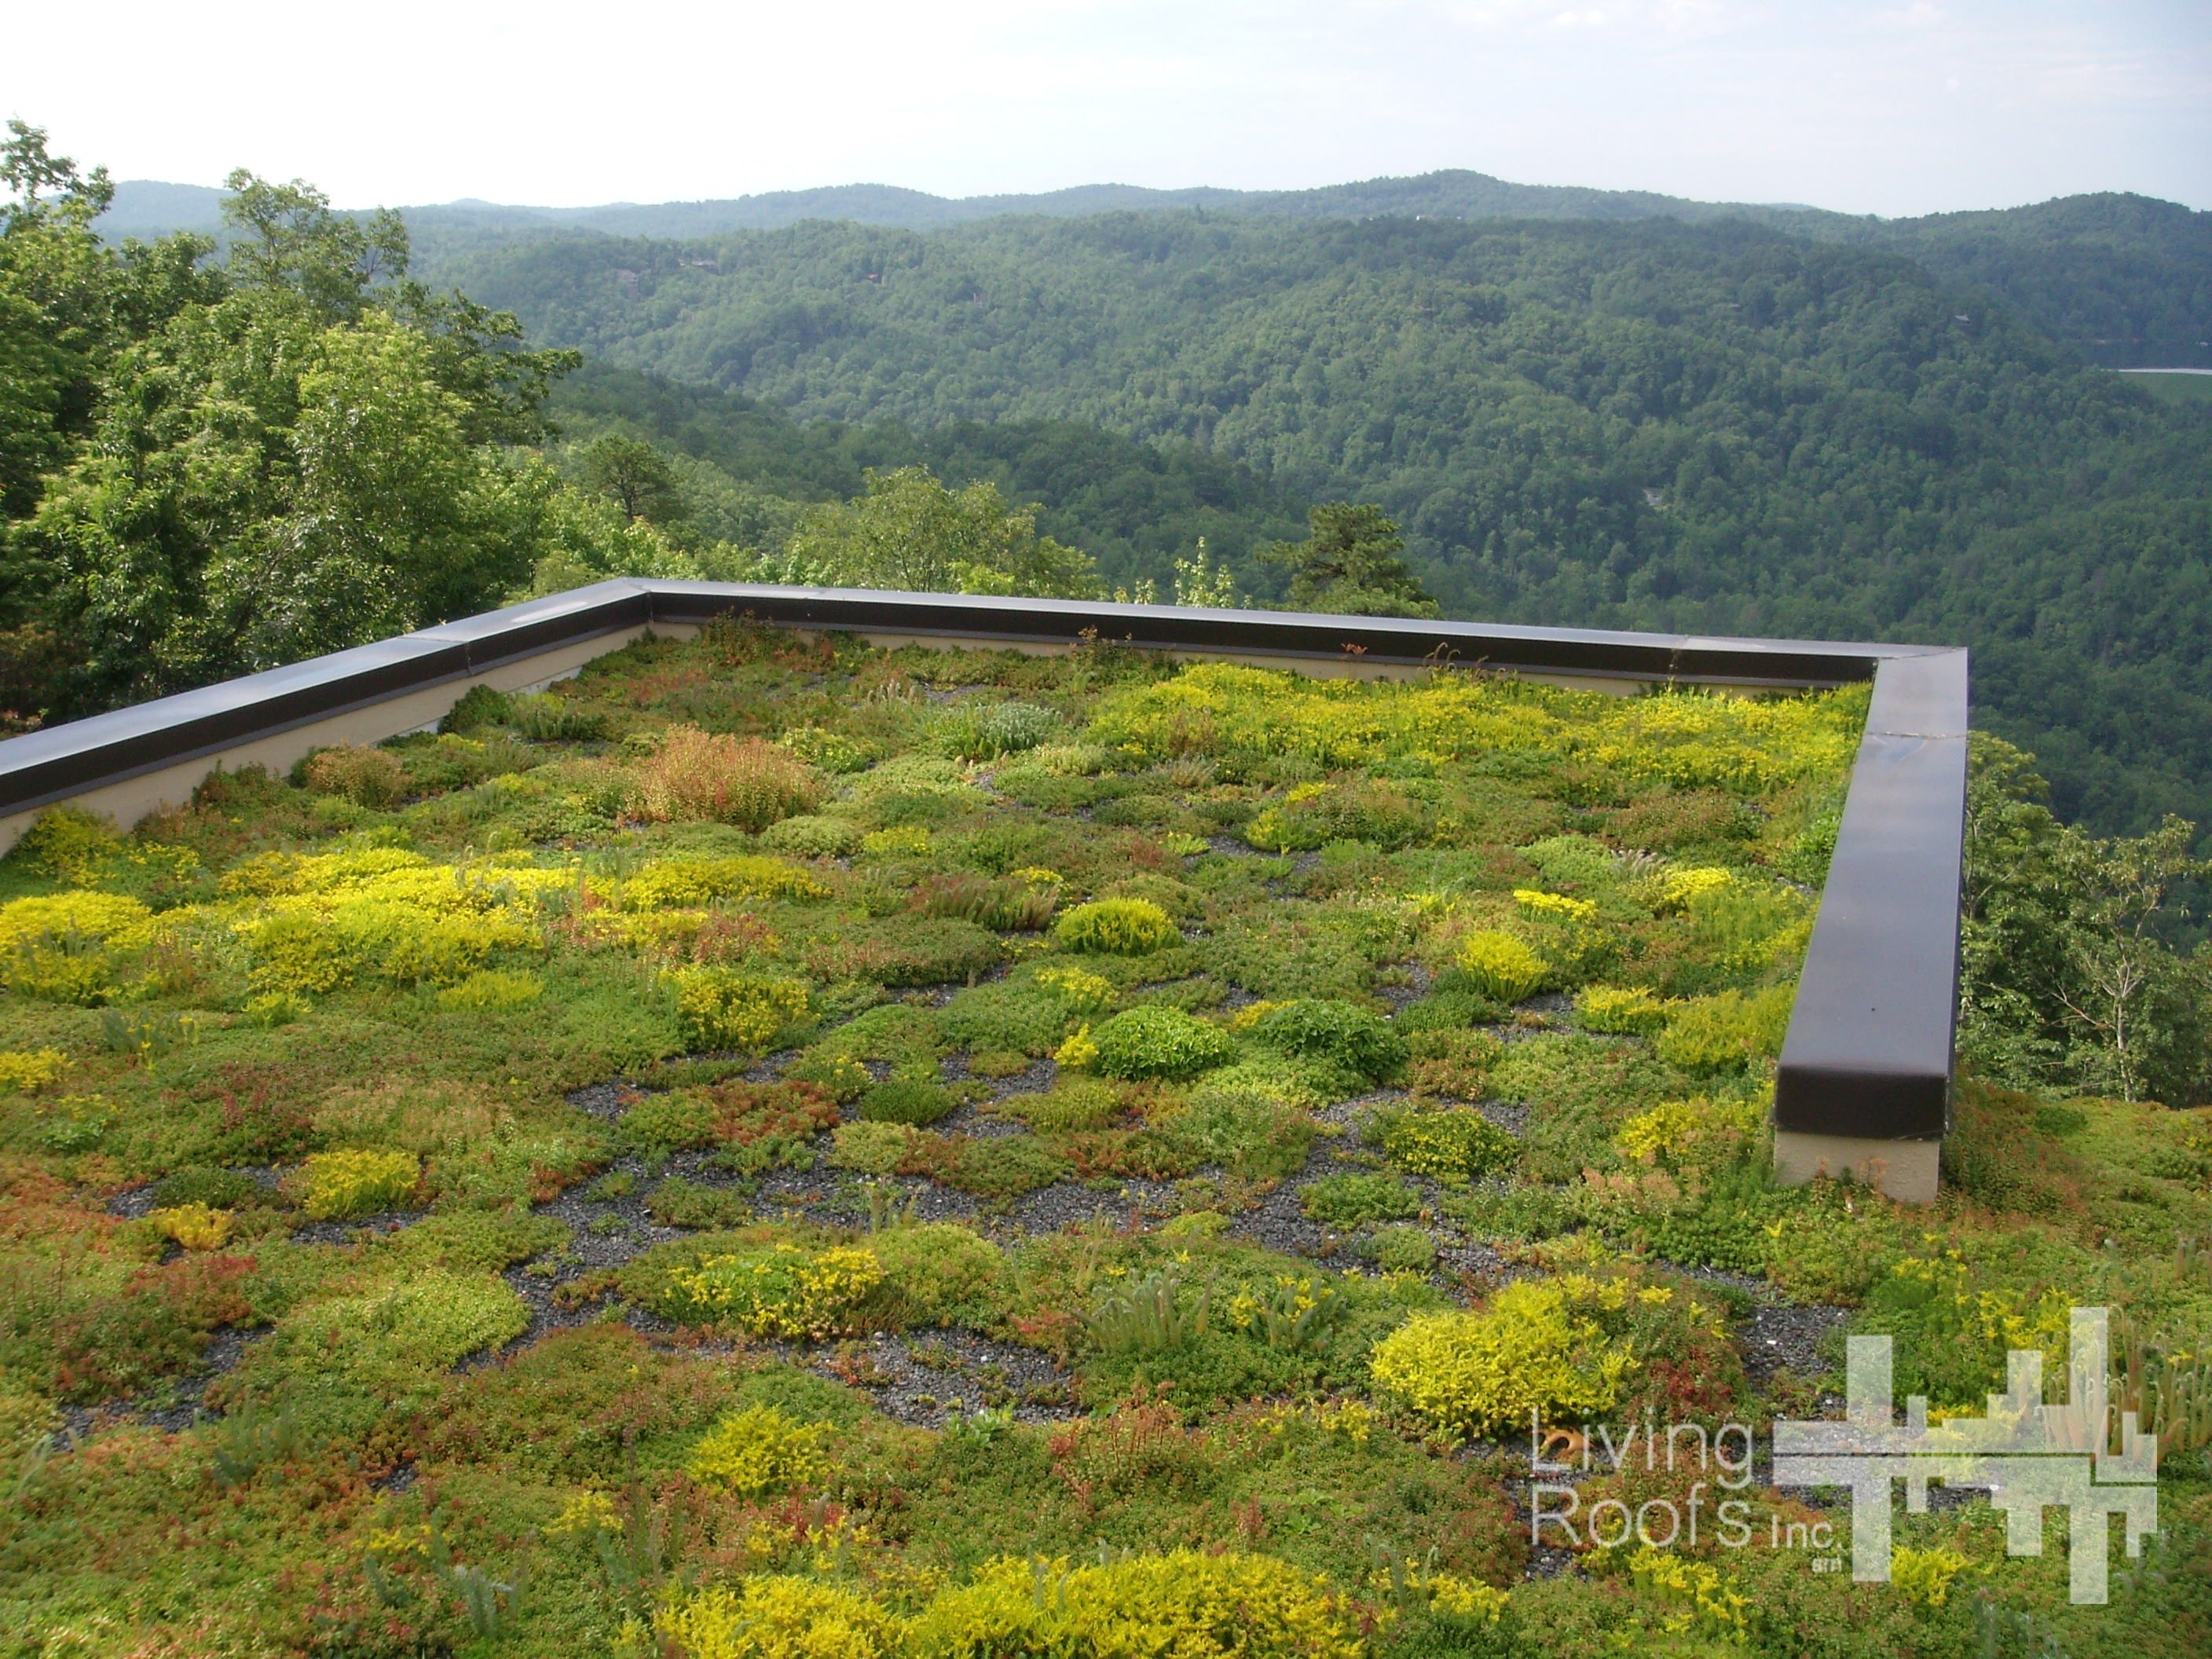 Two Extensive Green Roofs Were Incorporated Into The Design Of The House To Minimize Its Impact Visually An Green Roof Residential Green Roof Design Green Roof